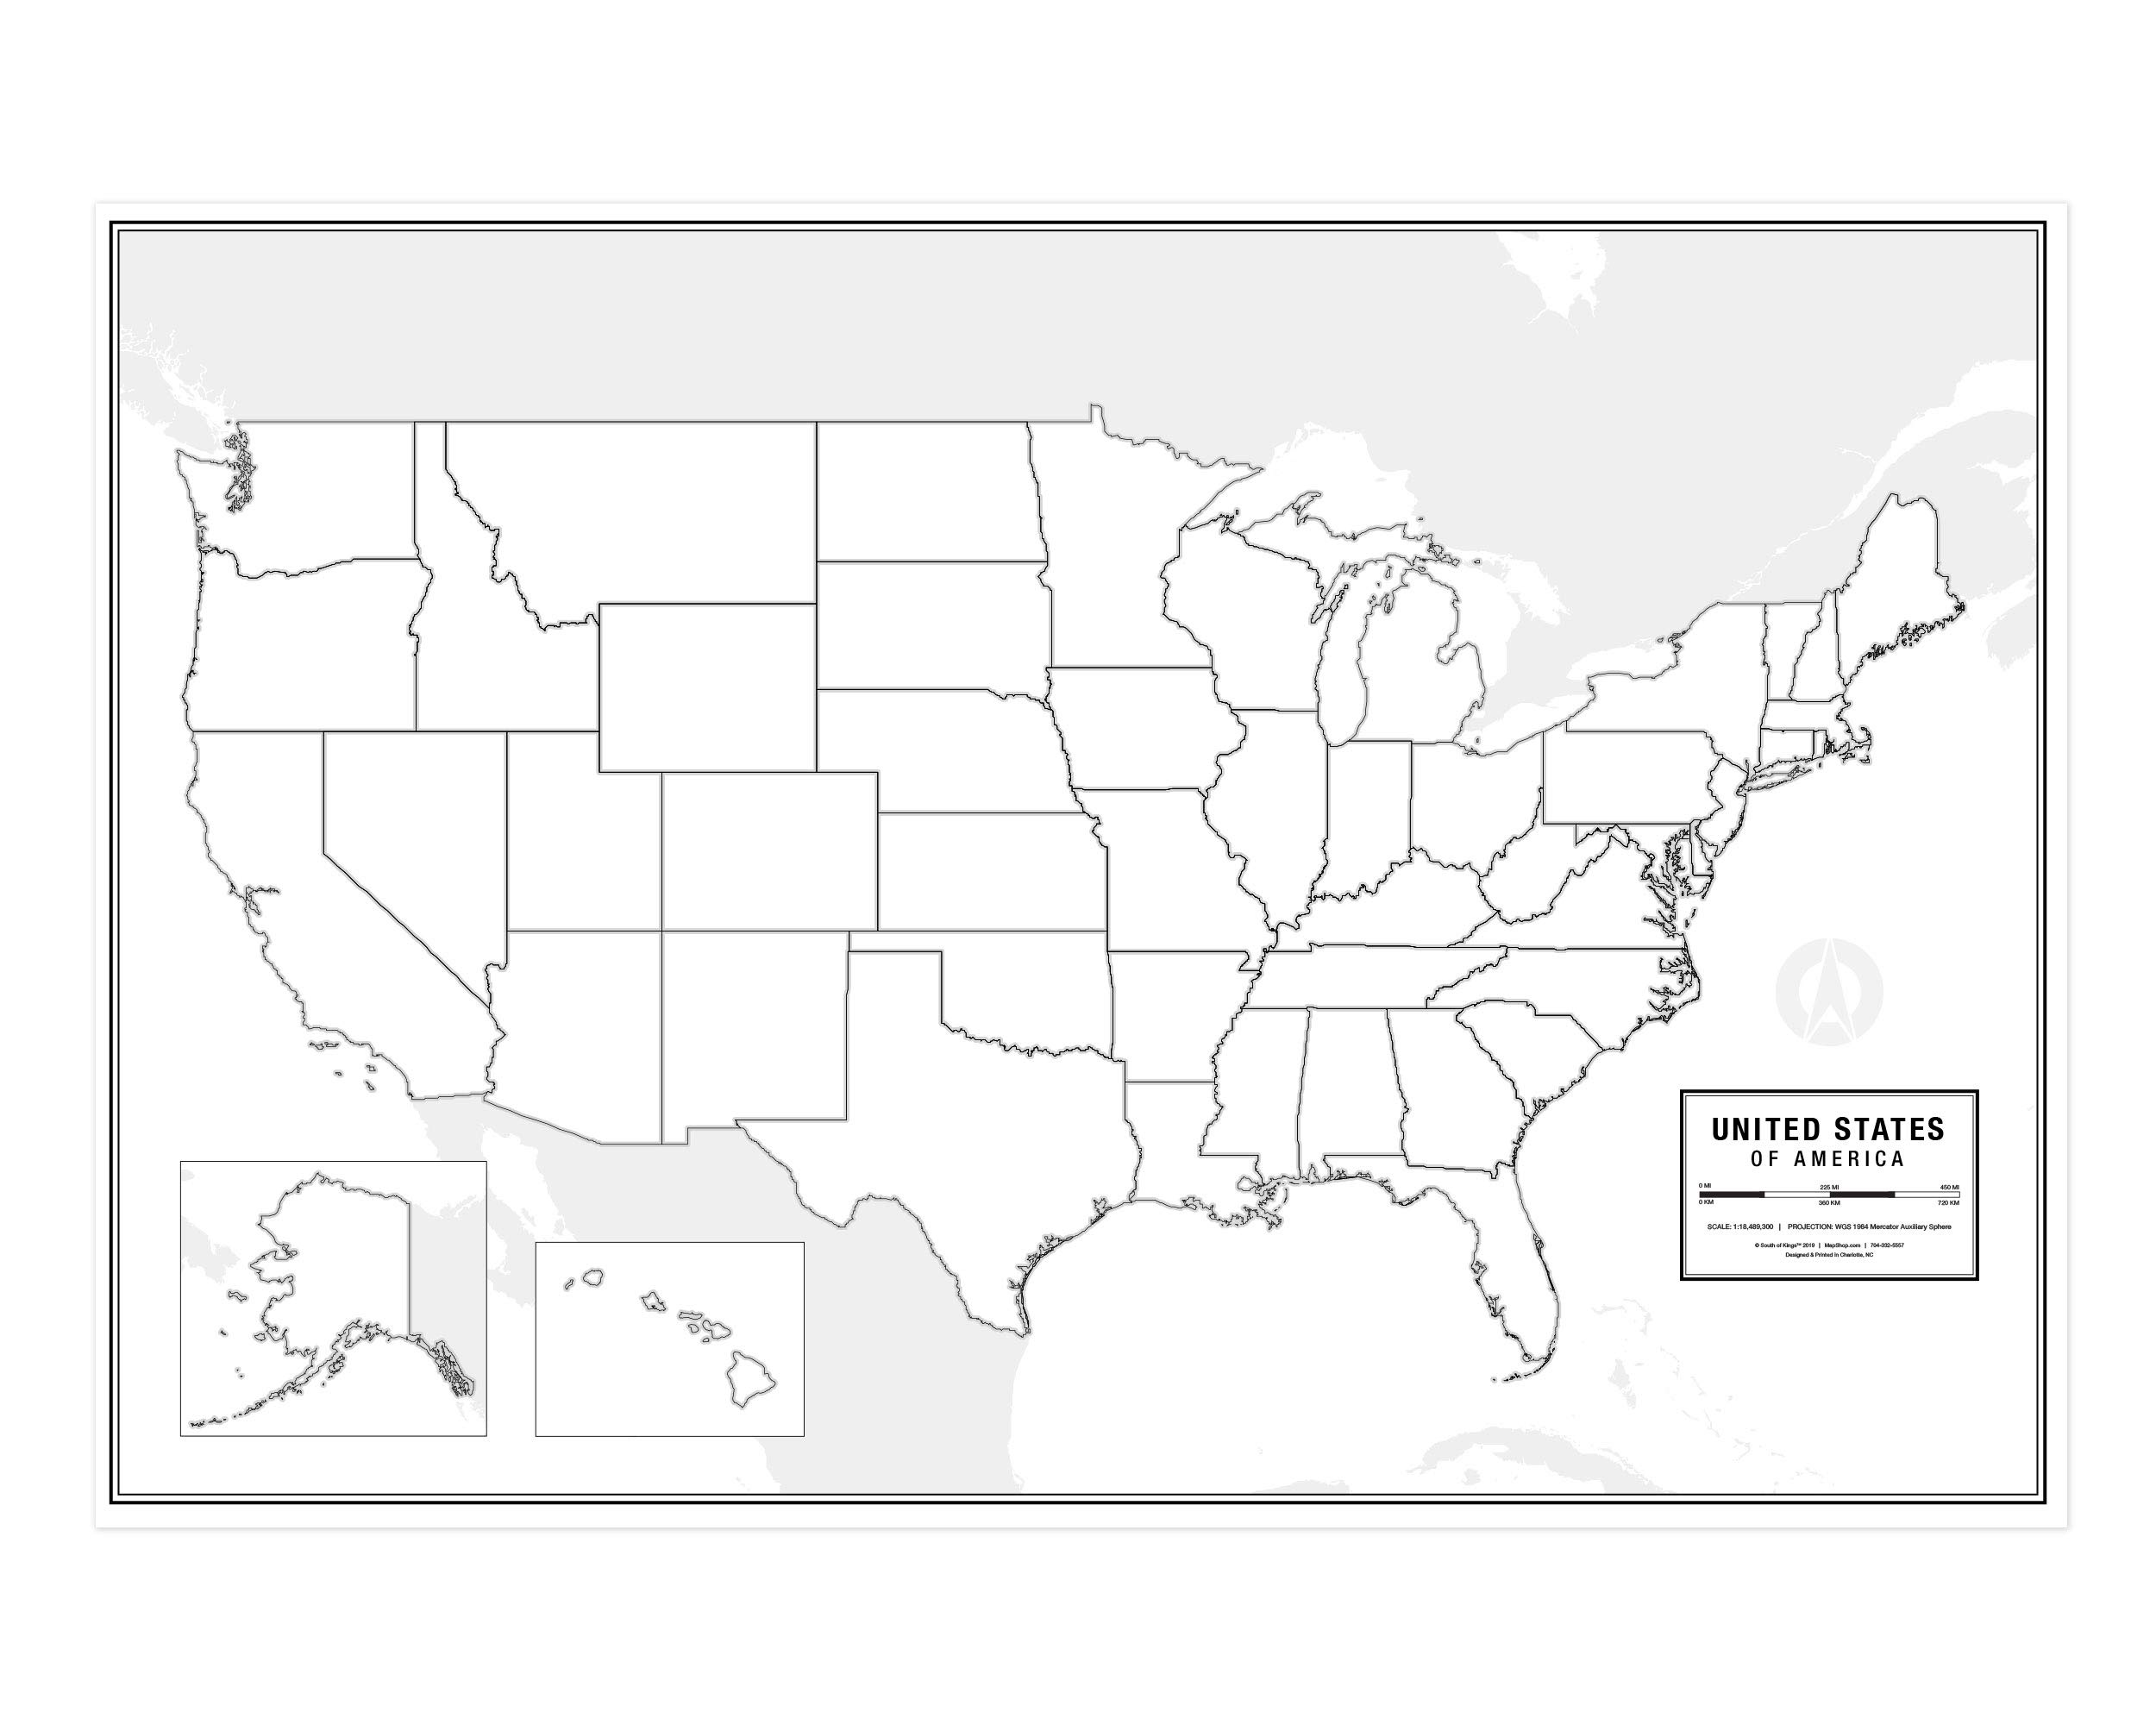 Large Blank United States Outline Map Poster, Laminated, 36'' x 24'' | Great Blank Wall Map for Classroom or Home Study | Free Dry Erase Marker Included | Includes Detailed Laminated Answer Sheet by South of Kings